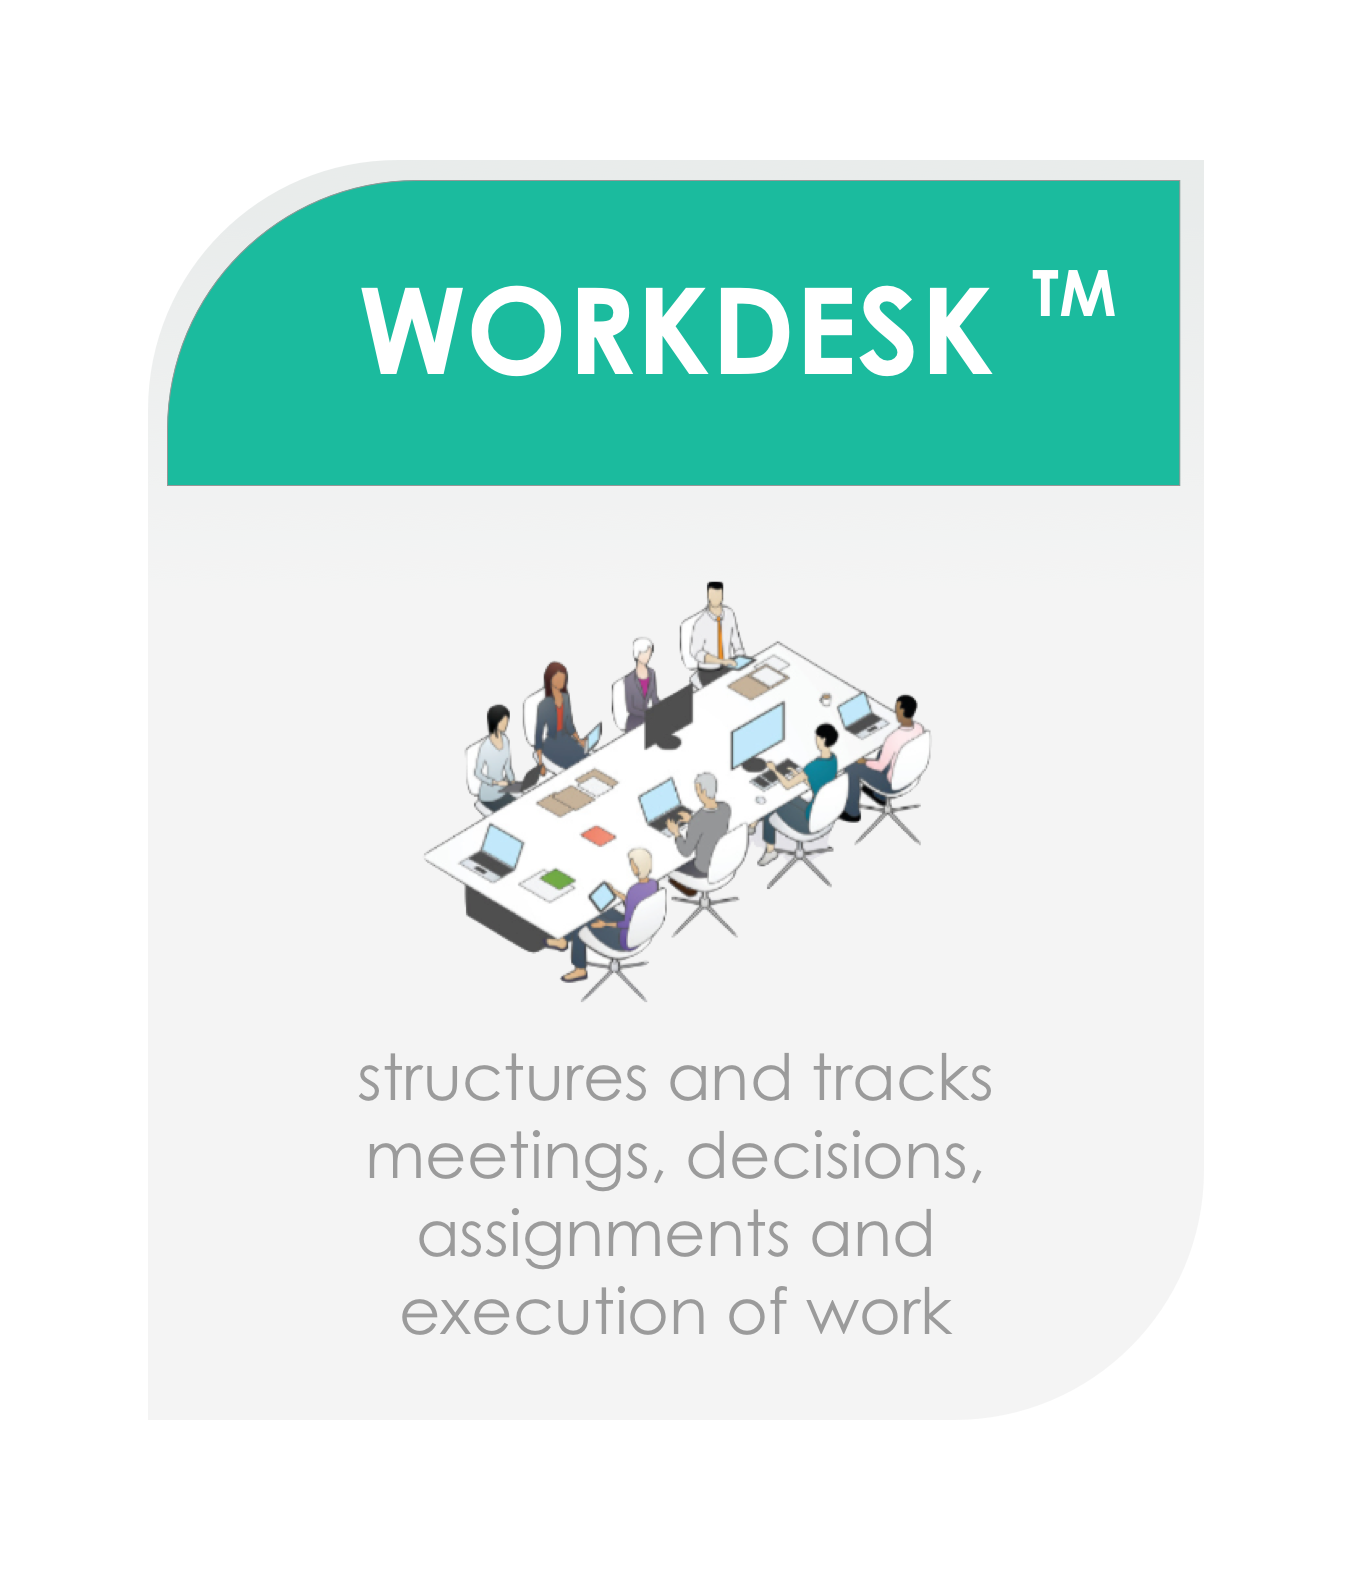 02 WORK DESK Card - Small Cartoon with TM.png